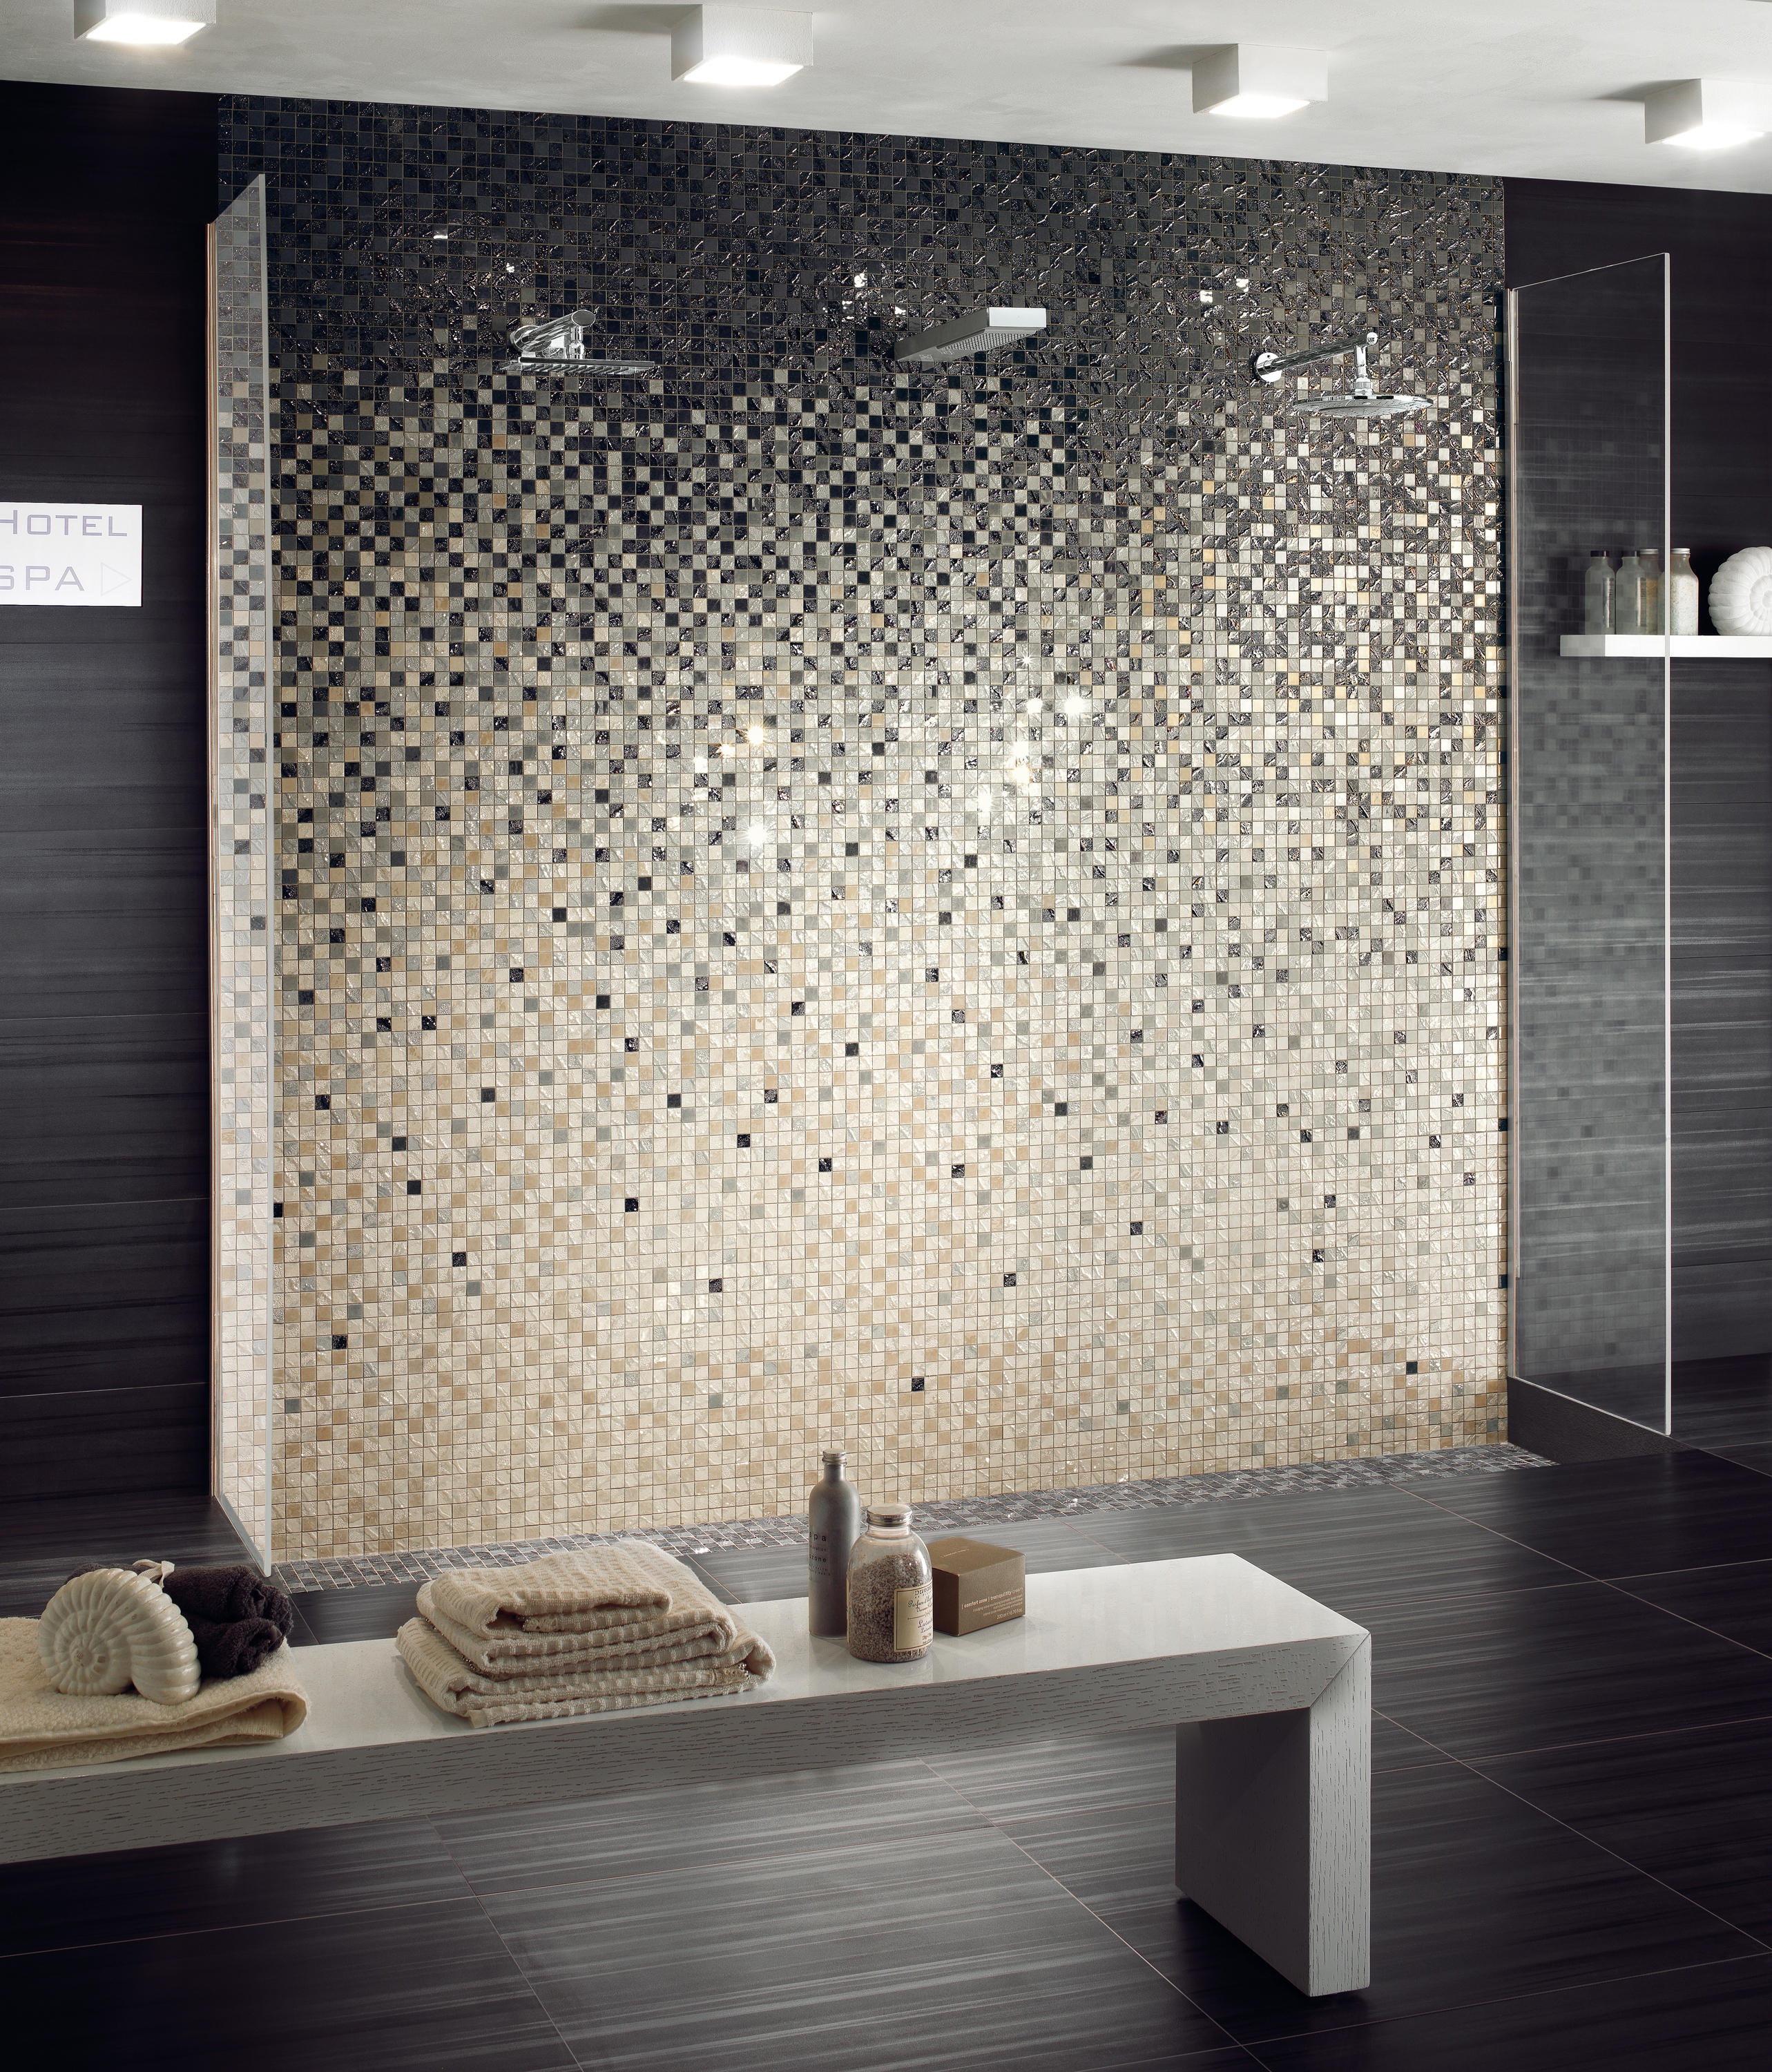 FOUR SEASONS SPRING SATIN - Ceramic mosaics from Ceramiche Supergres ...